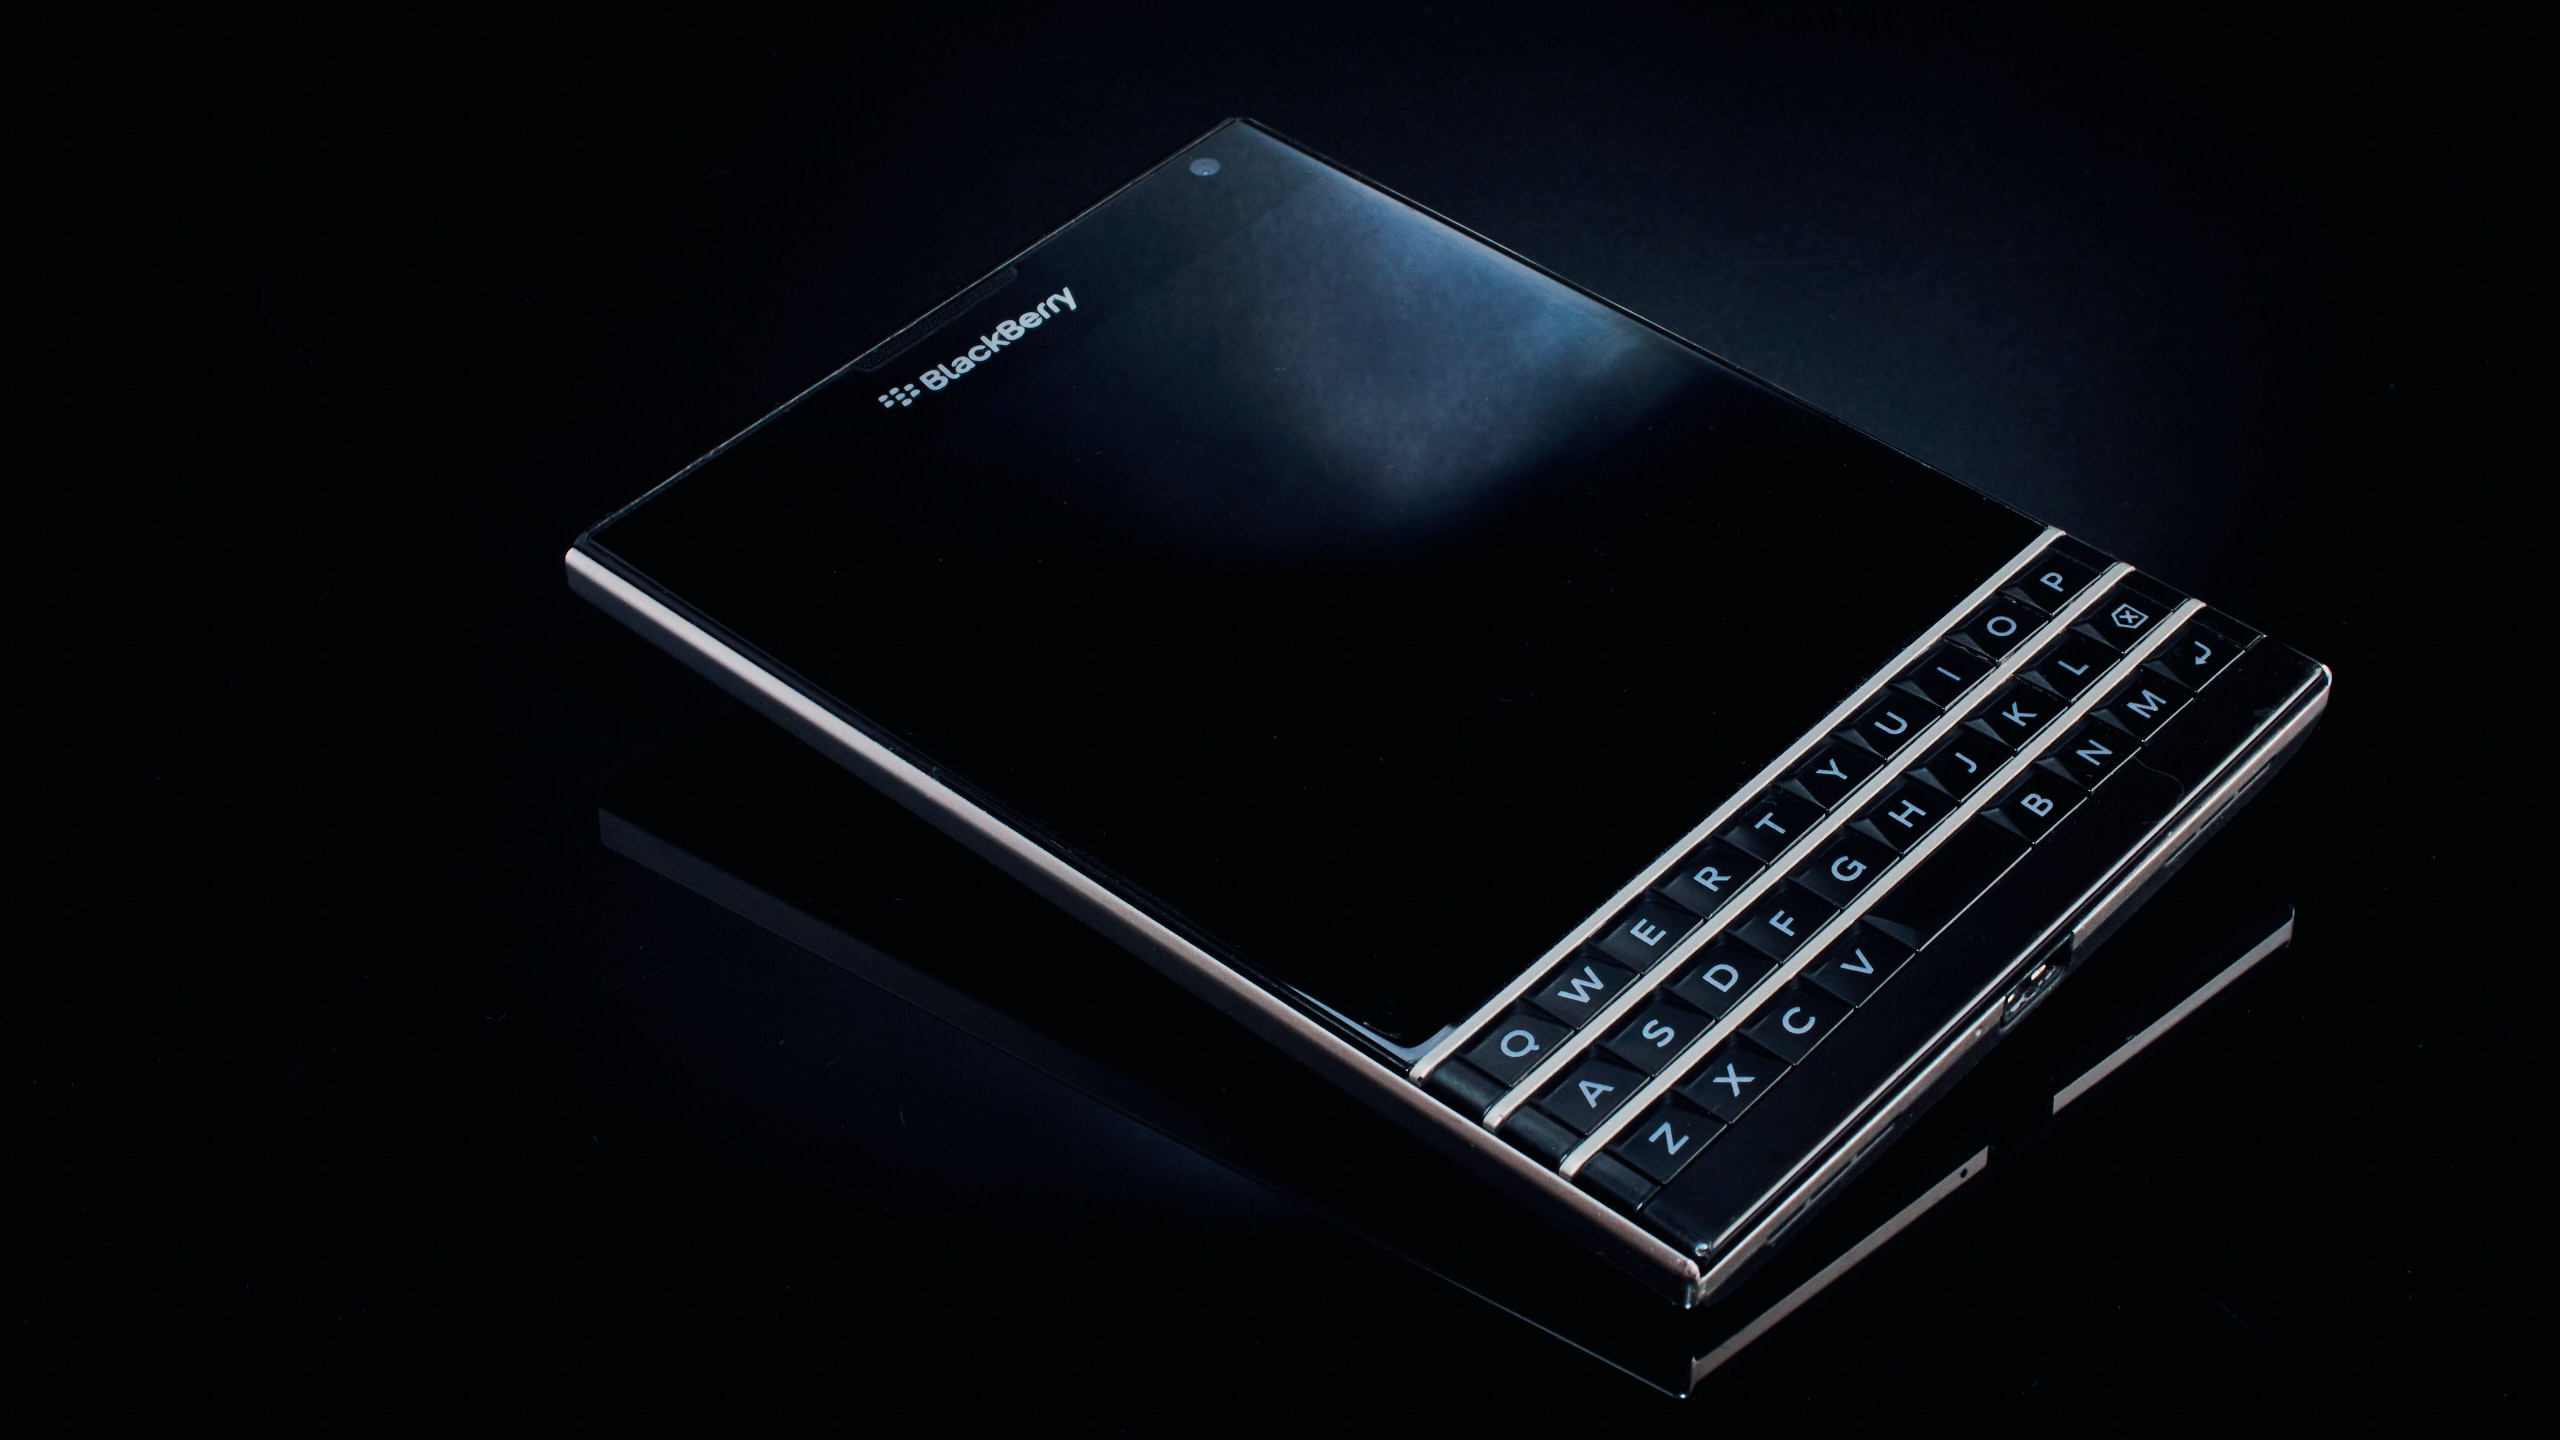 black BlackBerry Passport smartphone